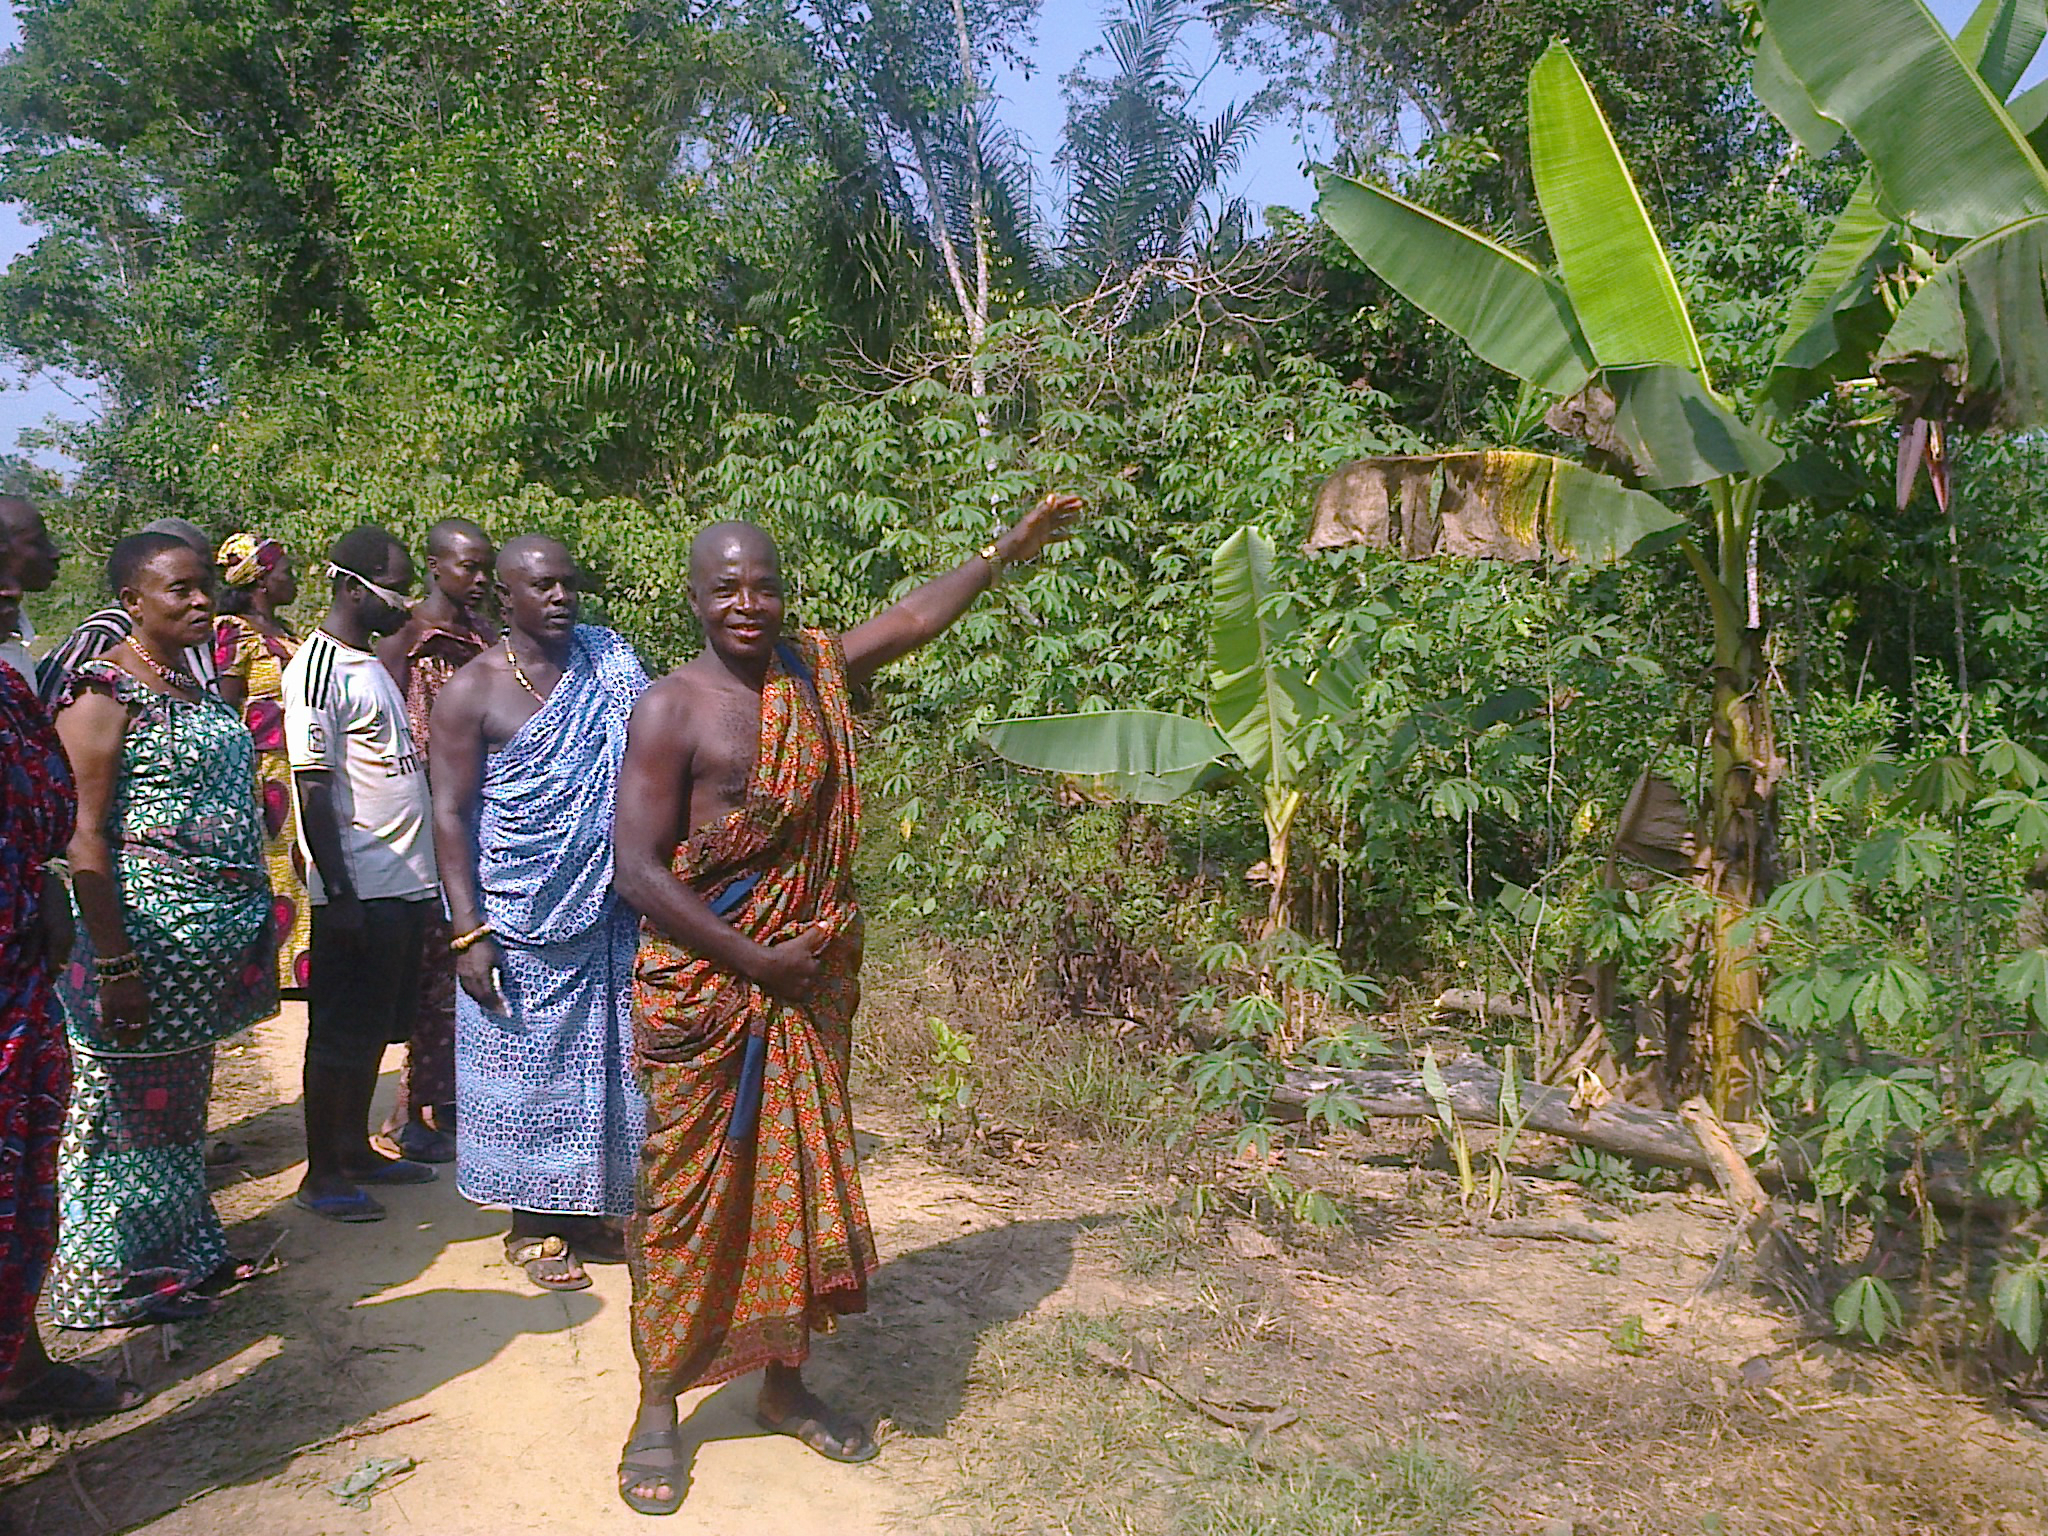 The chief of Tarkwa Breman and village elders show off the 100 acres of land to be donated for the school and clinic.